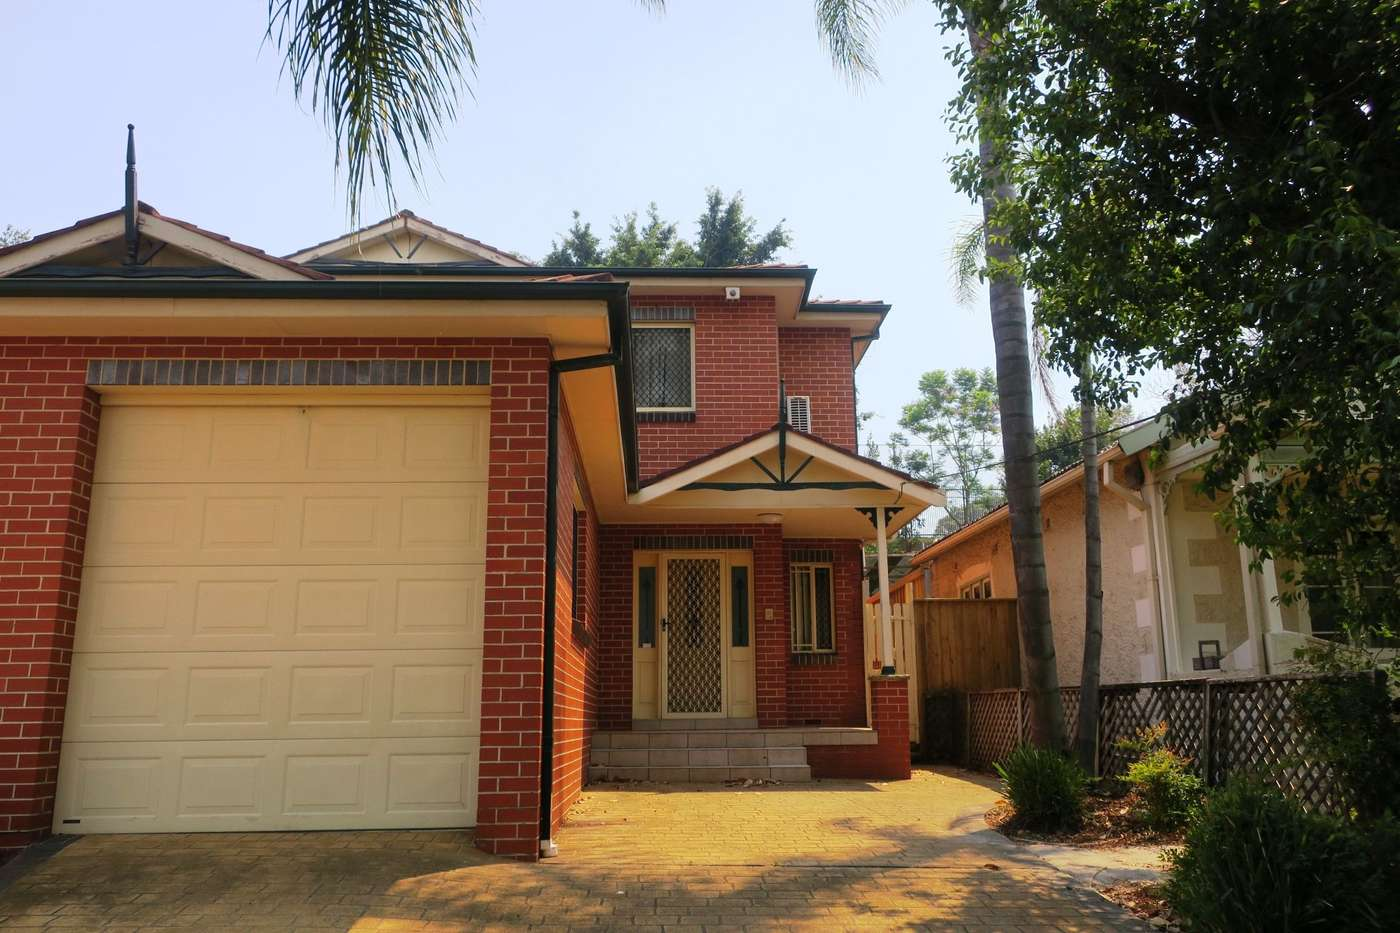 Main view of Homely house listing, 23 Milling Street, Hunters Hill, NSW 2110